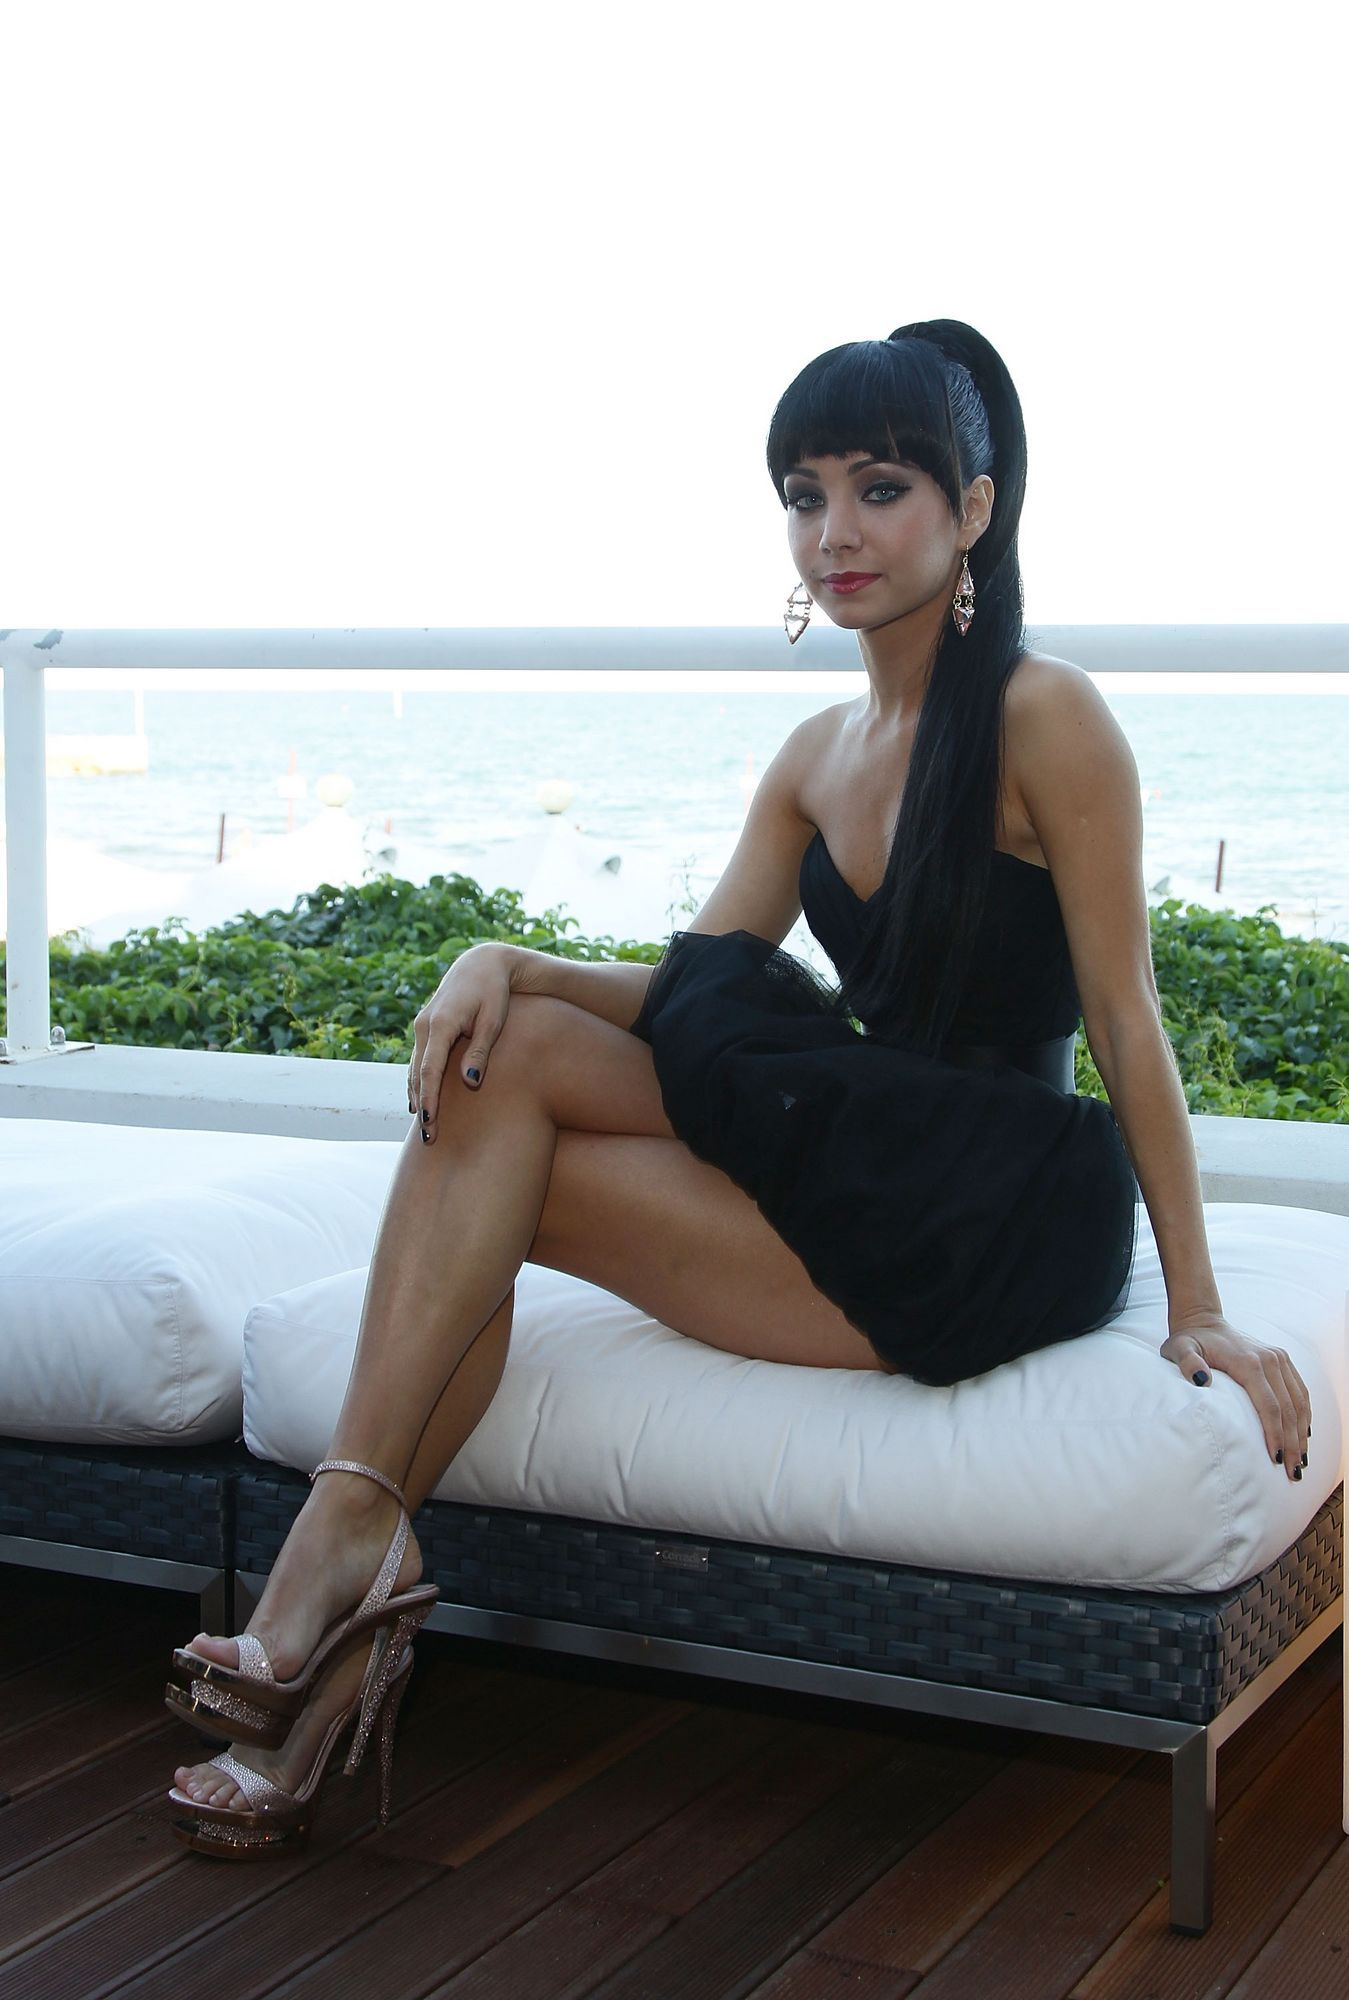 Ksenia Solo's Feet (294334) - Ksenia Solo Images, Pictures, Photos ...